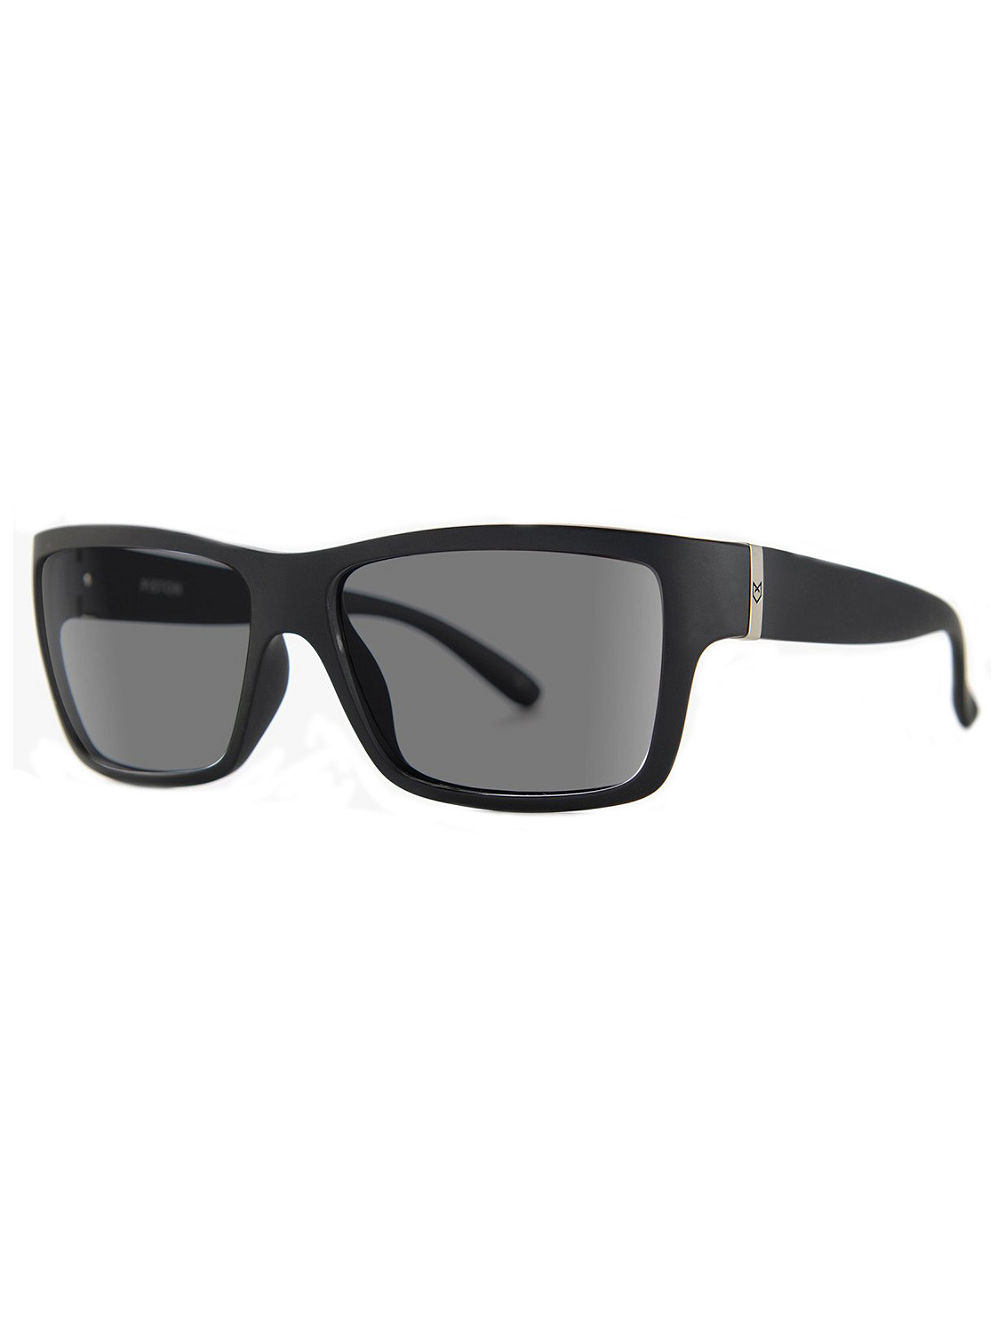 Piston Black Matte Sonnenbrille